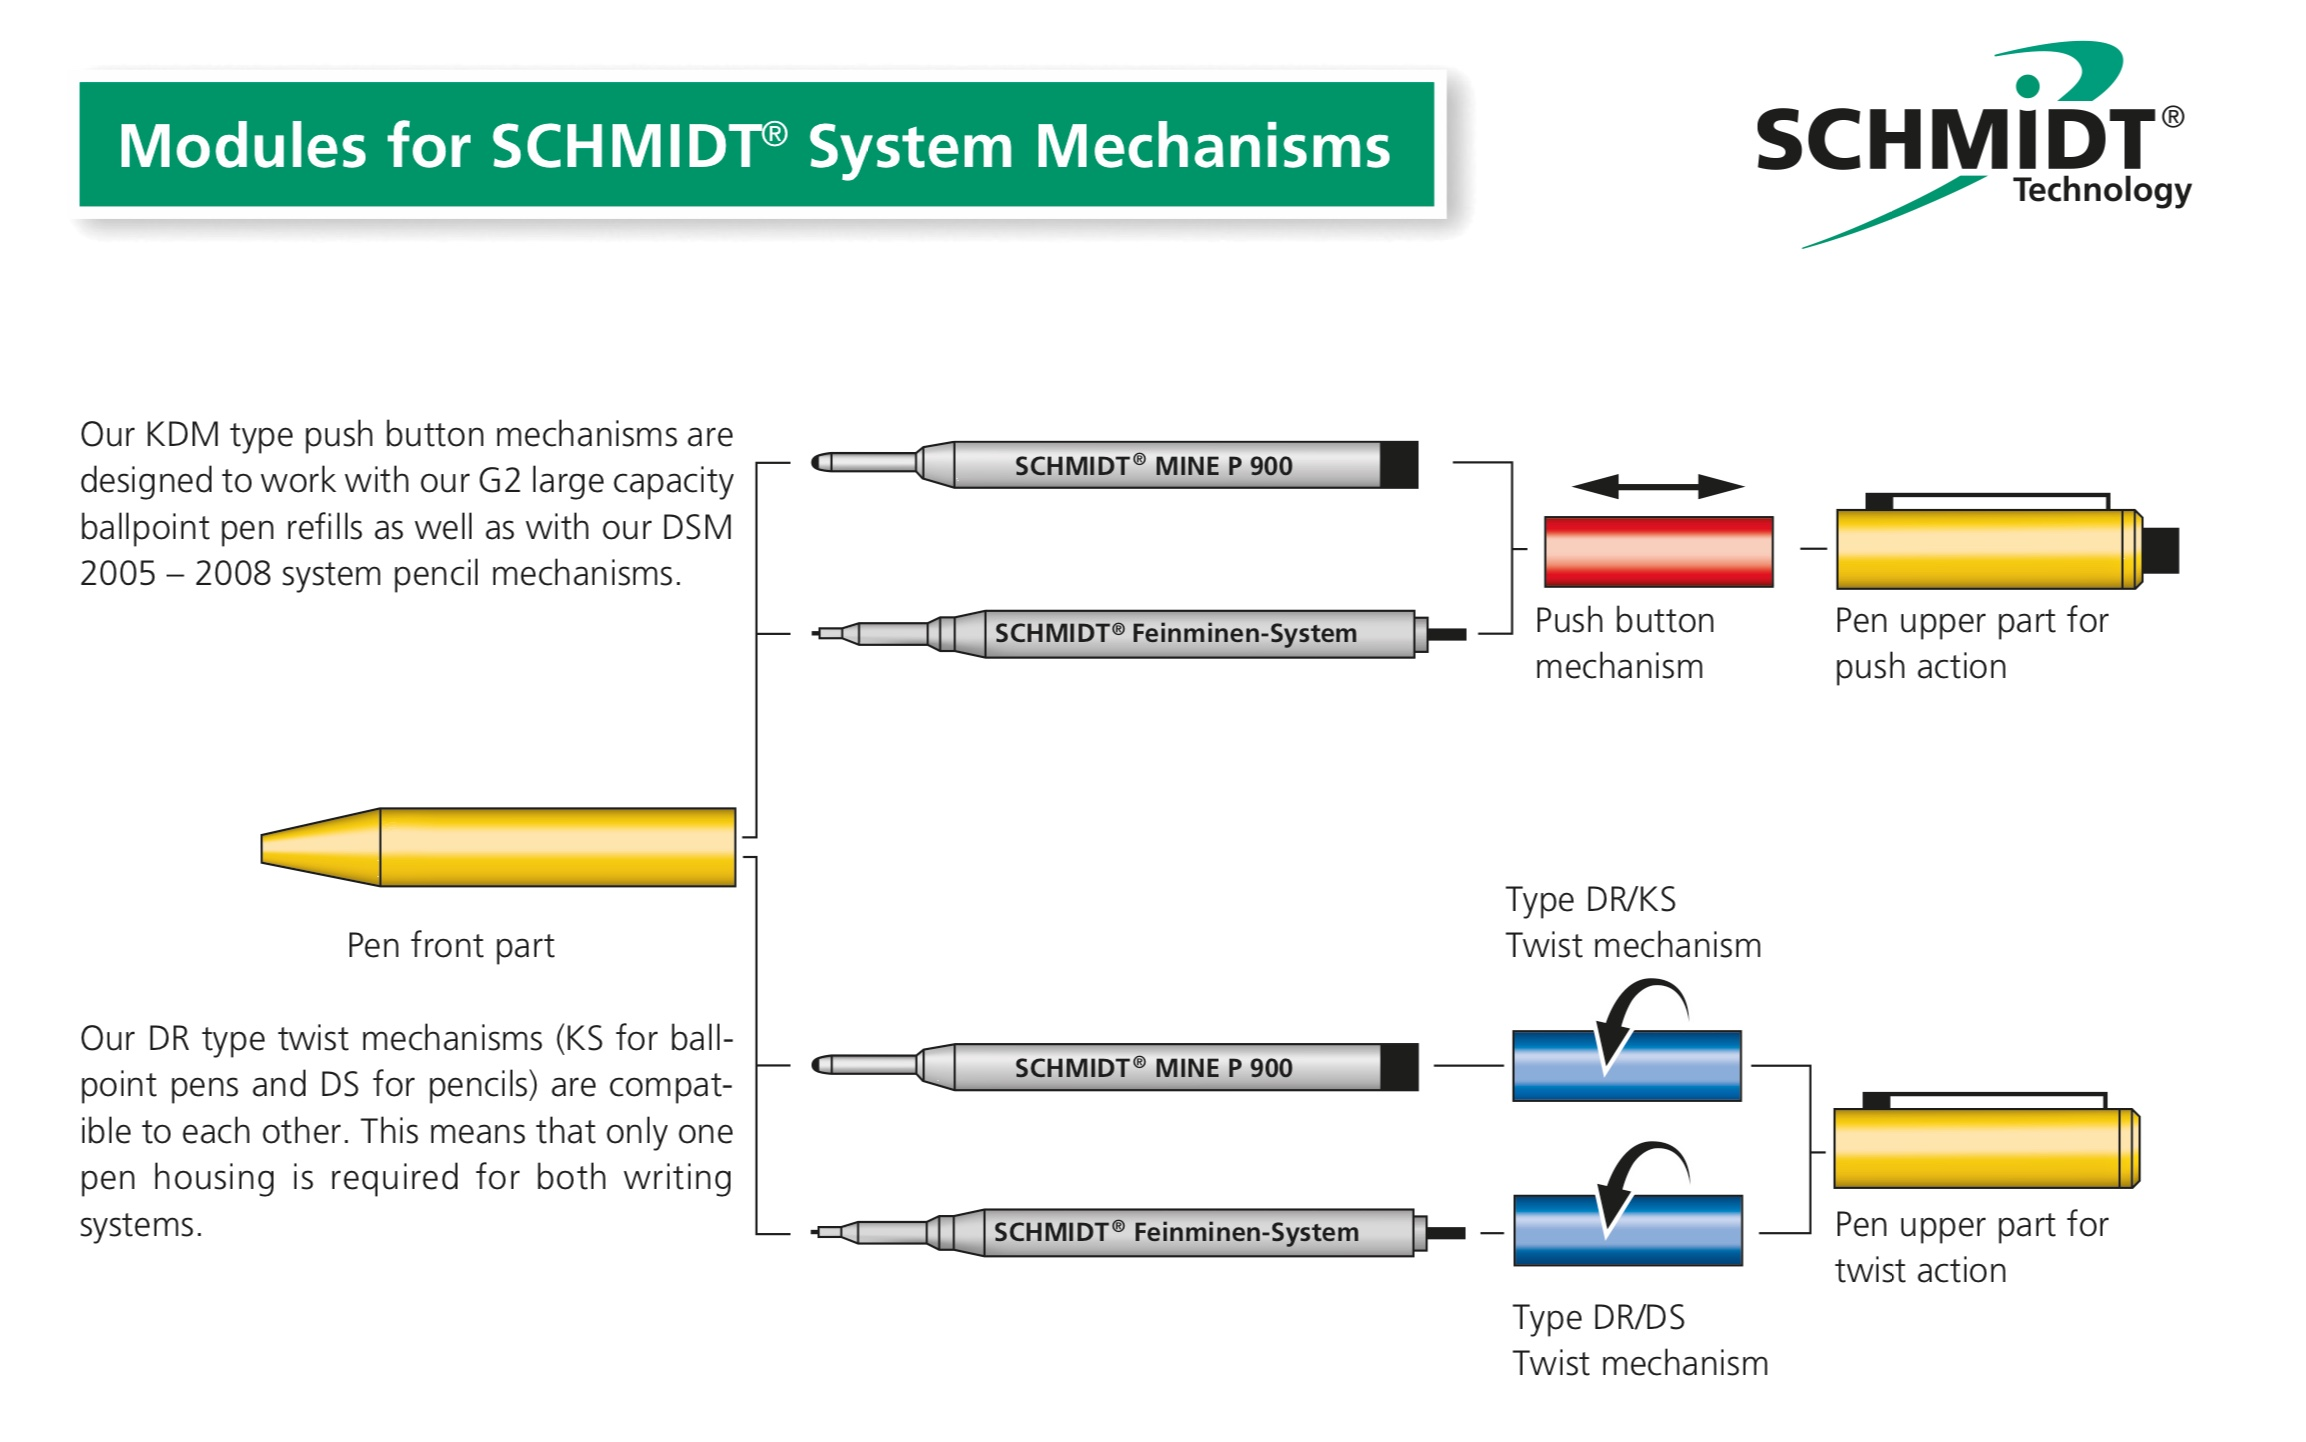 153 Archives Bleistift Ballpoint Pen Diagram The System Mechanism Means That There Only Needs To Be One Type Body Being Made Which Can Then Filled With A Refill Or Mechanical Pencil